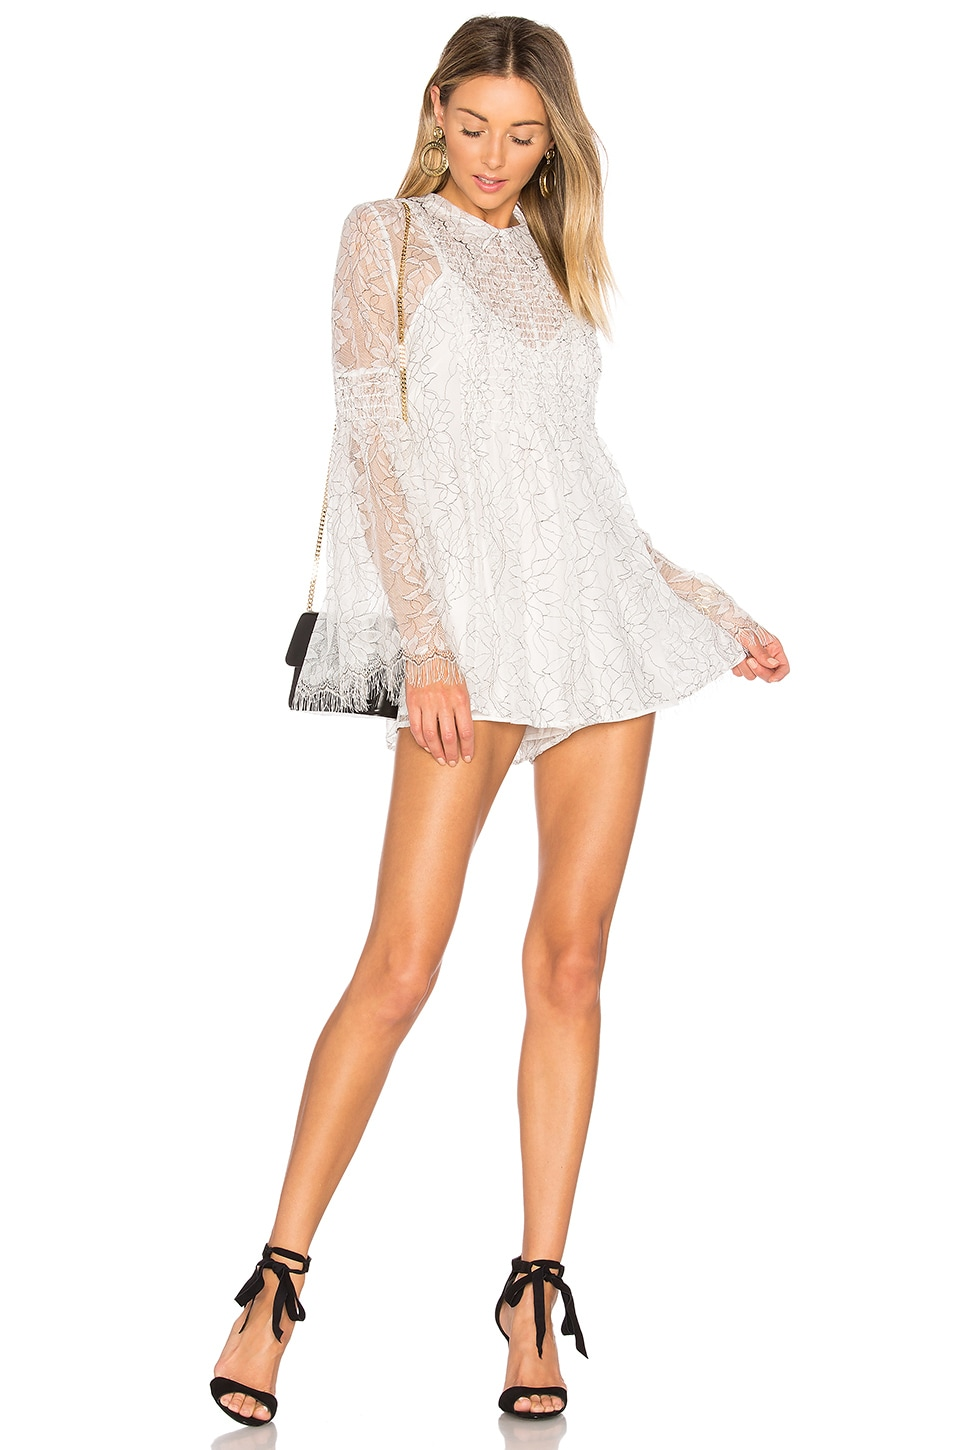 420d3b9015 Alice McCall Hands To Myself Playsuit in White